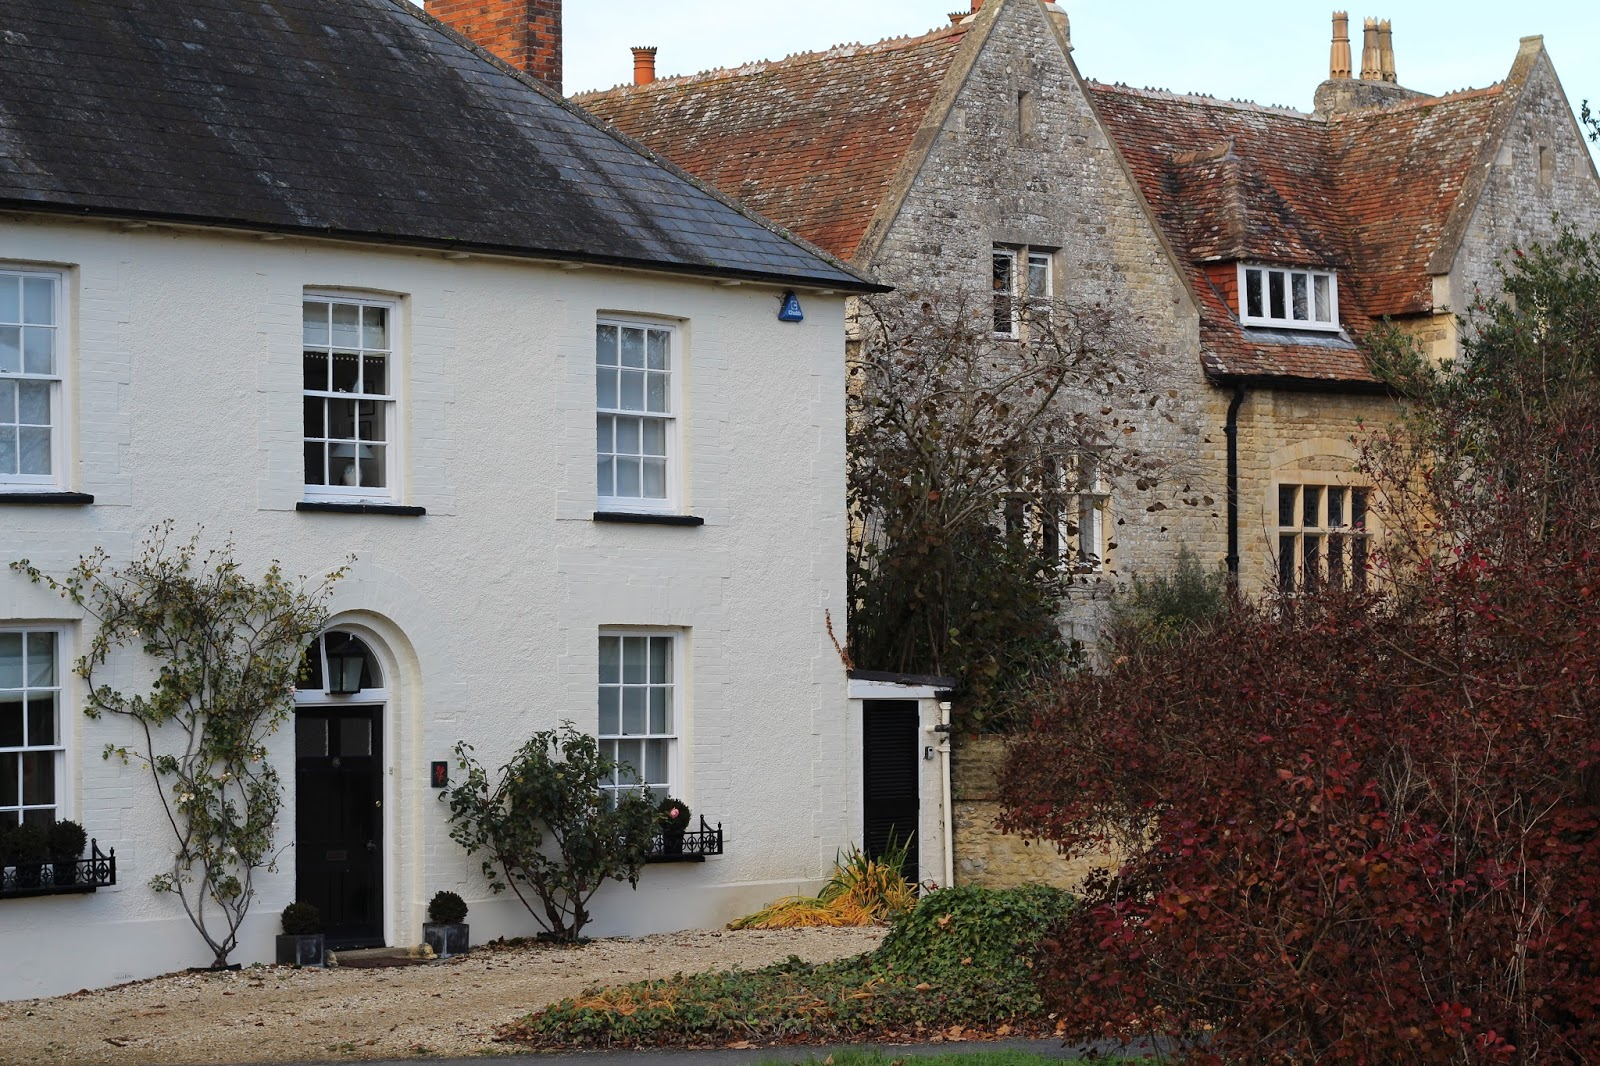 The village is full of beautiful little cottages and dreamy houses. If staying in Oxford long term meant we got to live in one of these beauties I could ... & Right on our Doorstep: Exploring Great Milton | Life With The Roof Down